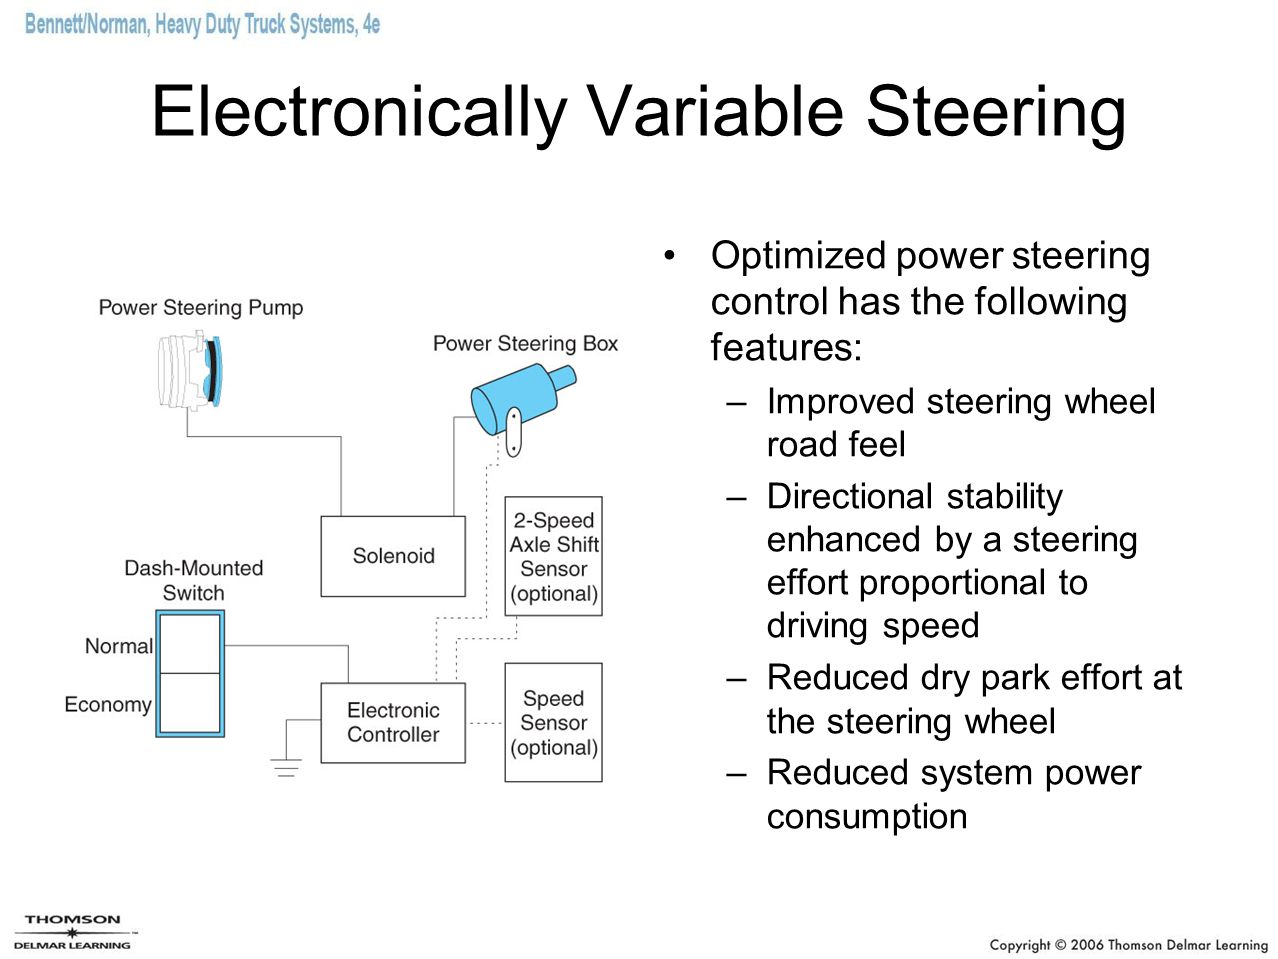 Electronically Variable Steering